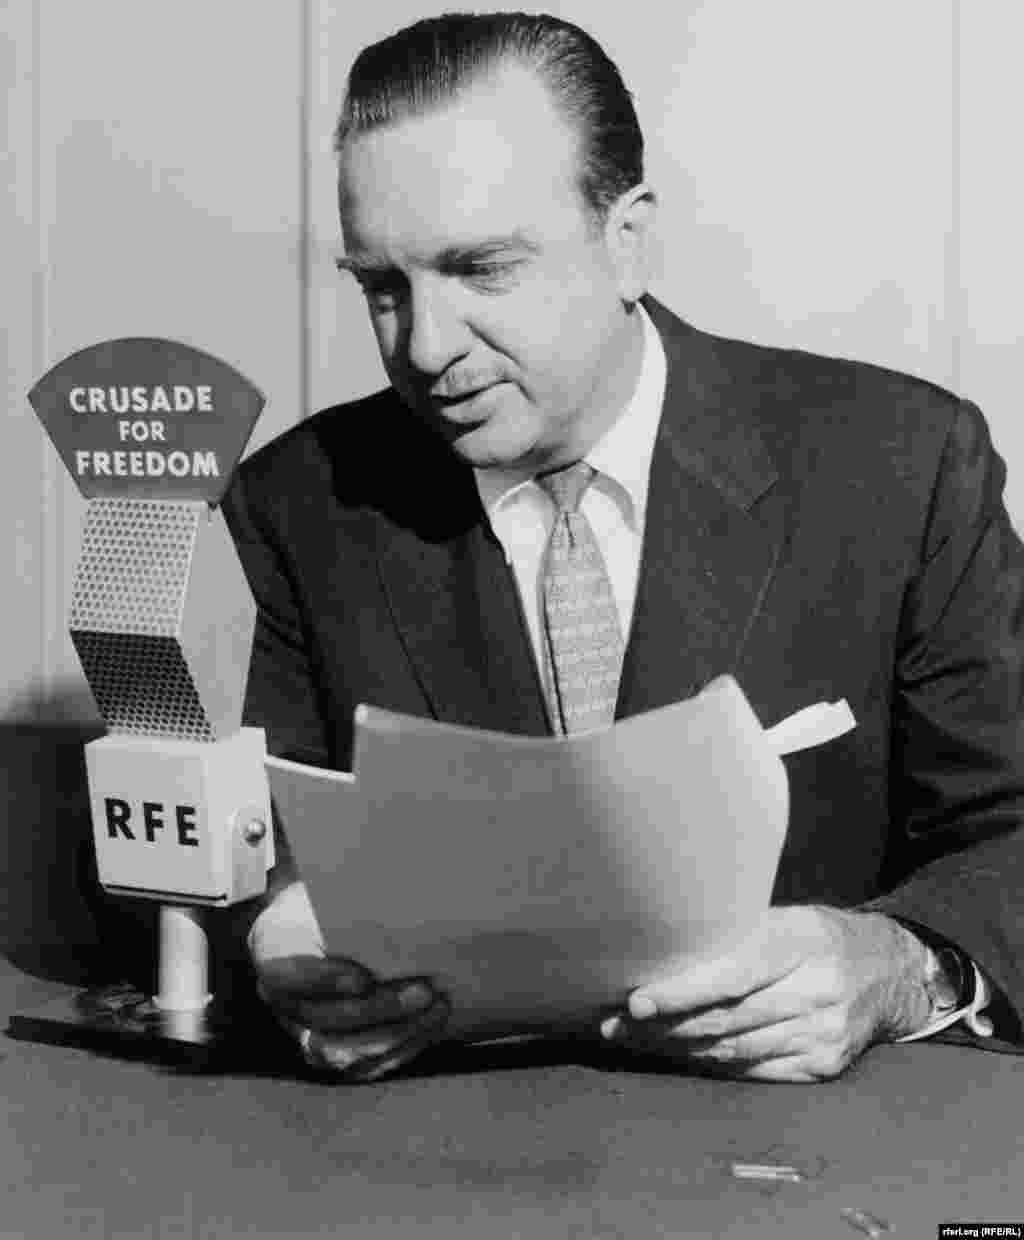 U.S. journalist Walter Cronkite narrates a film about RFE commissioned by the National Committee for a Free Europe-1960s - U.S. journalist Walter Cronkite narrates a film about RFE commissioned by the National Committee for a Free Europe in the 1960's.